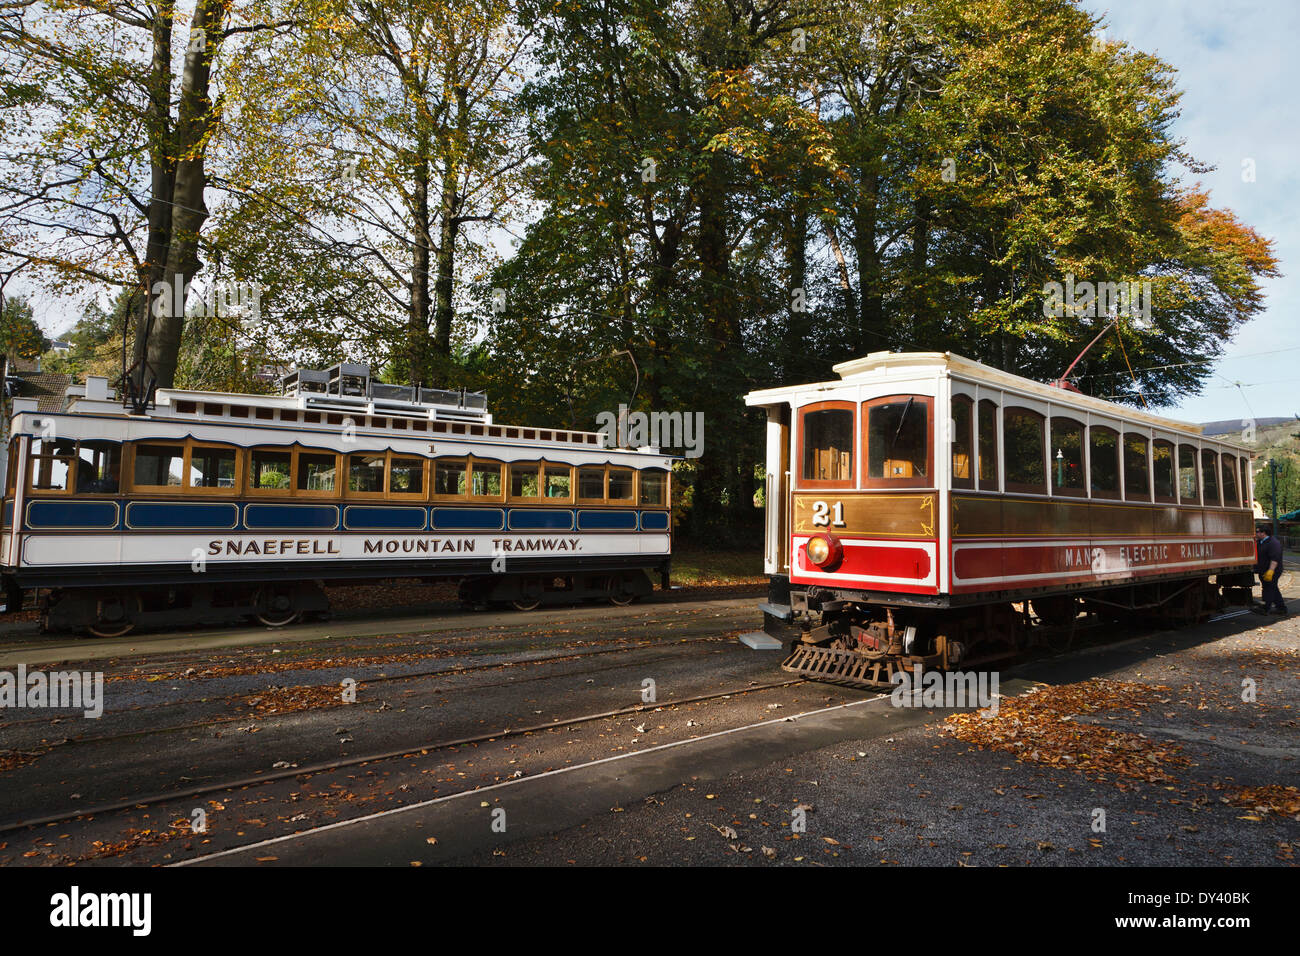 Snaefell Mountain Railway and Manx Electric Railway trams at Laxey, Isle of Man - Stock Image